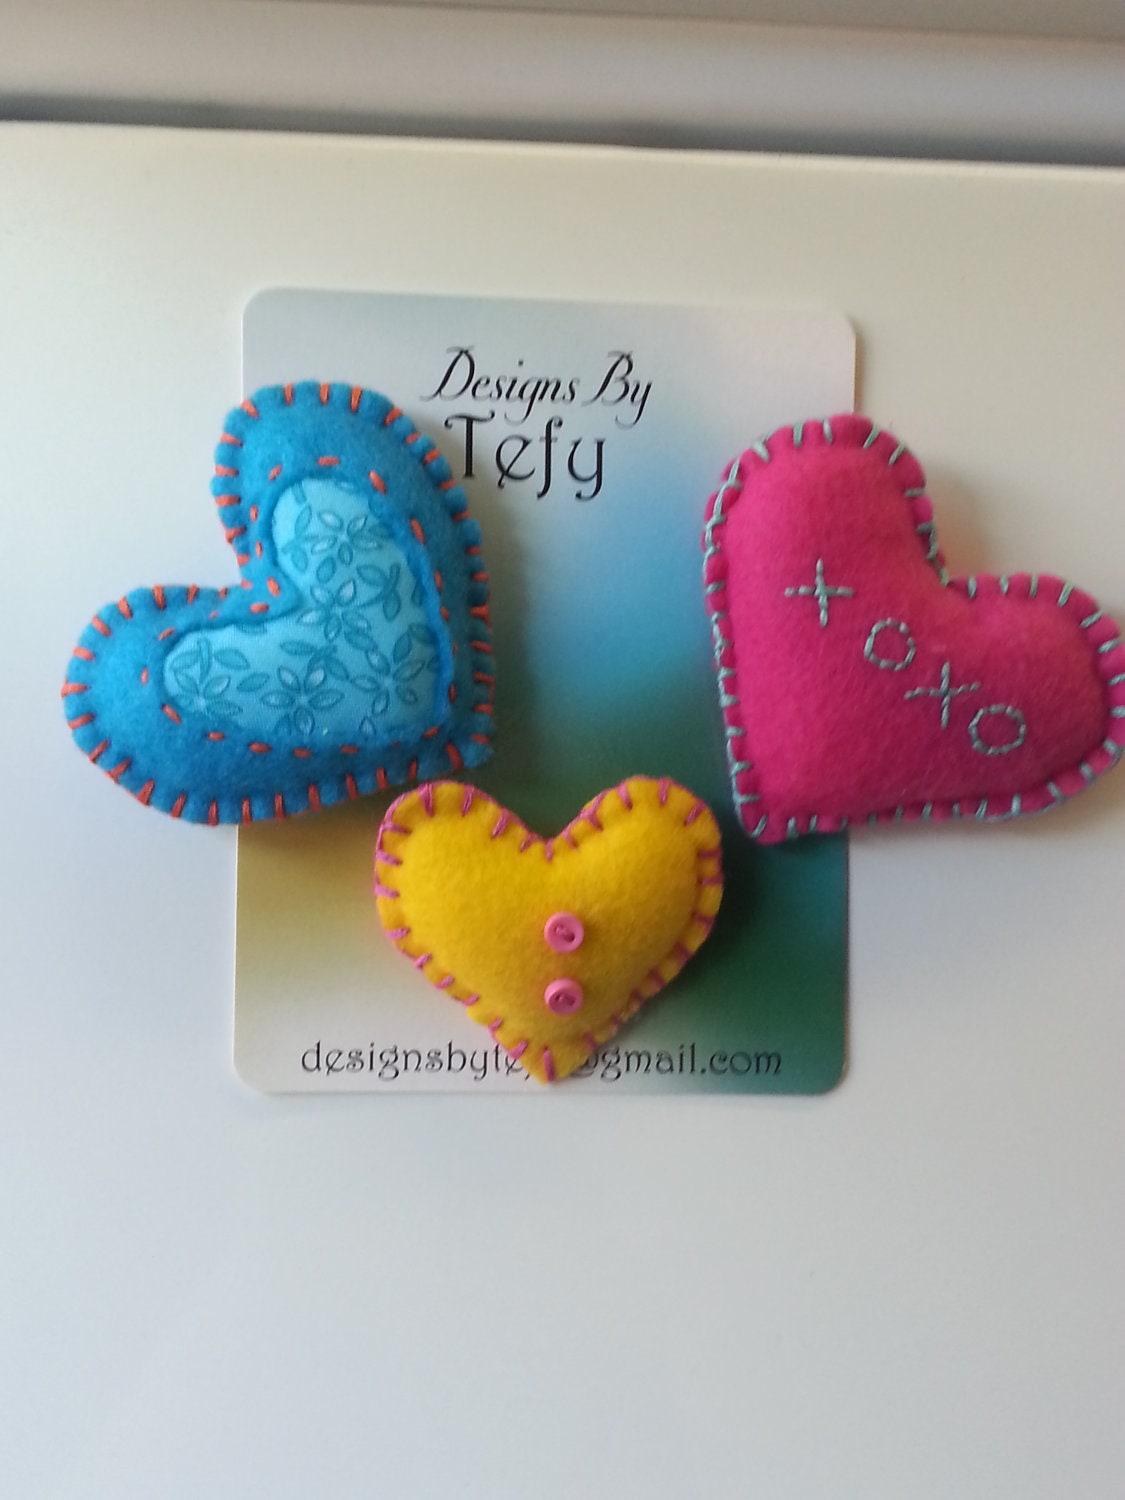 3 Colorful Hearts - DesignsByTefy